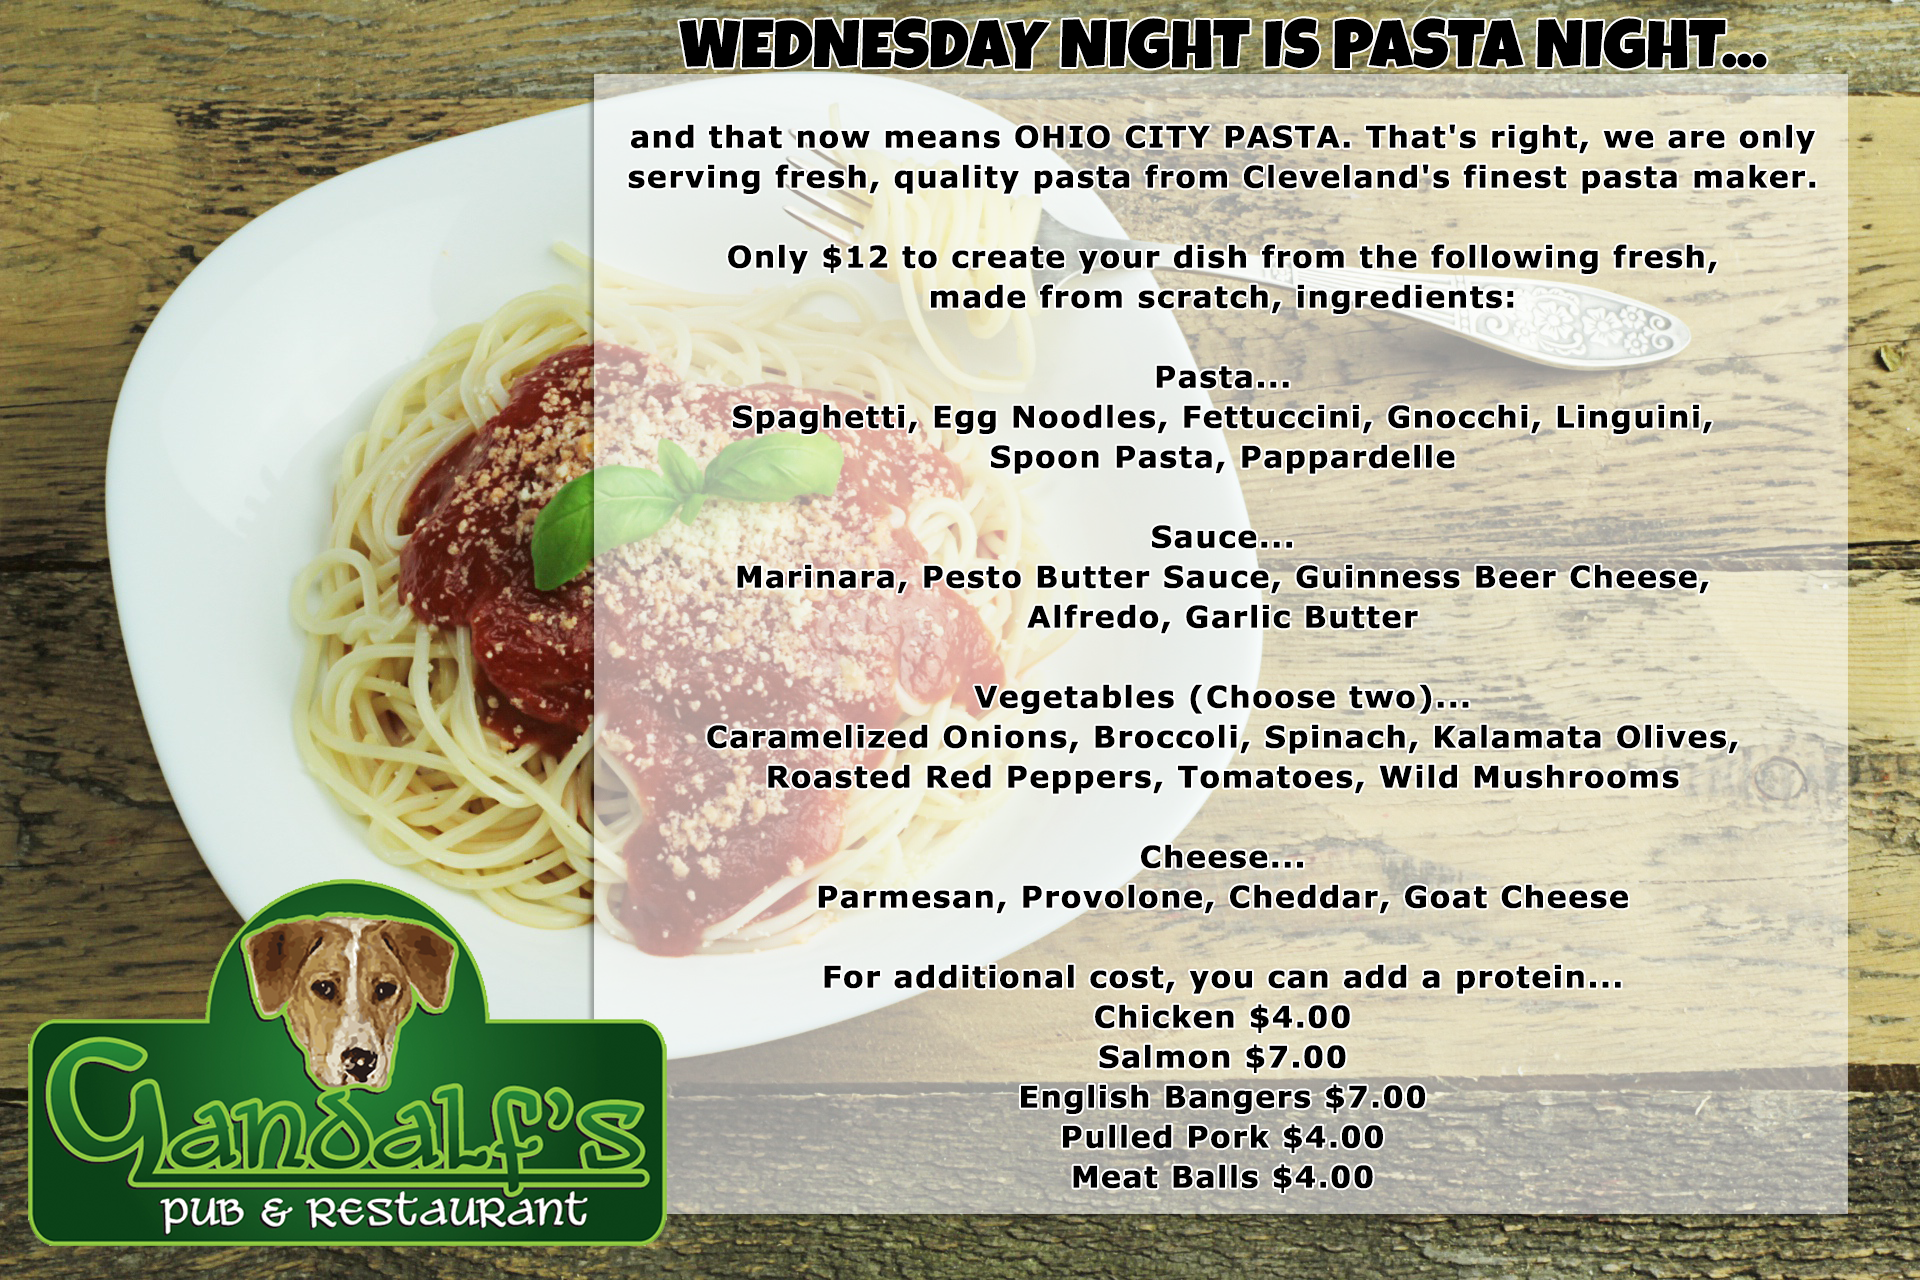 wednesday night is pasta night... and that now means ohio city pasta. That's right, we are only serving fresh, quality pasta from Cleveland's finest pasta maker. Only $12 to create your dish from the following fresh, made from scratch, ingrediants: pasta... spaghetti, egg noodles, fettuccini, gnocchi, linguini, spoon pasta, pappardelle. Sauce... marinara, pesto butter sauce, guinness beer cheese, alfredo, garlic butter. Vegetables (choose two)... caramelized onions, broccoli, spinach, kalamata olives, roasted red peppers, tomatoes, wild mushrooms. Cheese... parmesan, provolone, cheddar, goat cheese. For an additional cost, you can add a protein... chicken $4, salmon $7, english bangers $7, pulled pork $4, meat balls $4